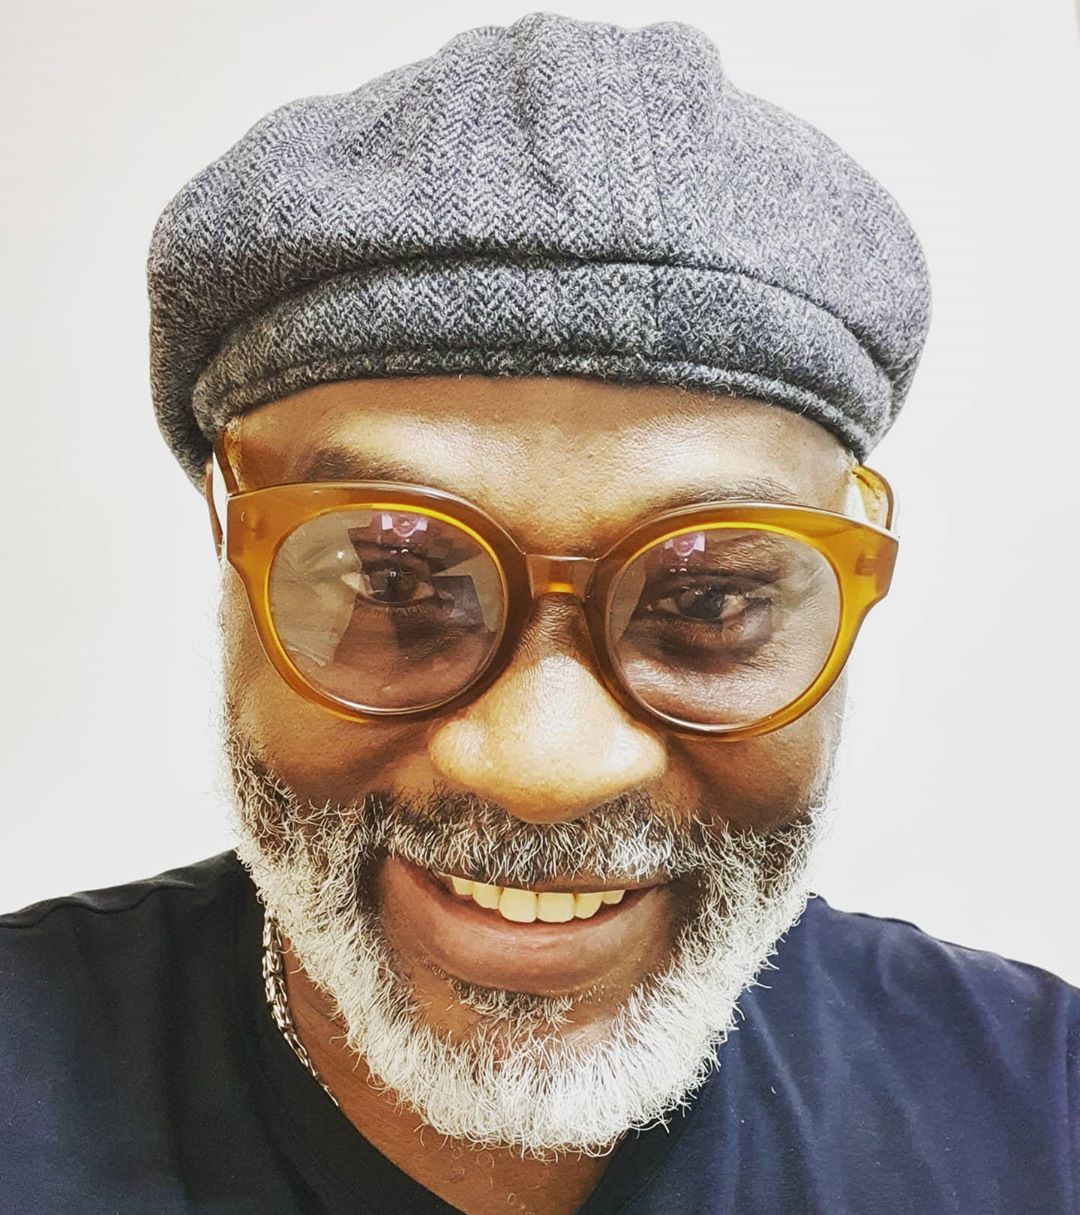 RICHARD MOFE-DAMIJO: PROFILE OF AN ICONIC NOLLYWOOD ACTOR